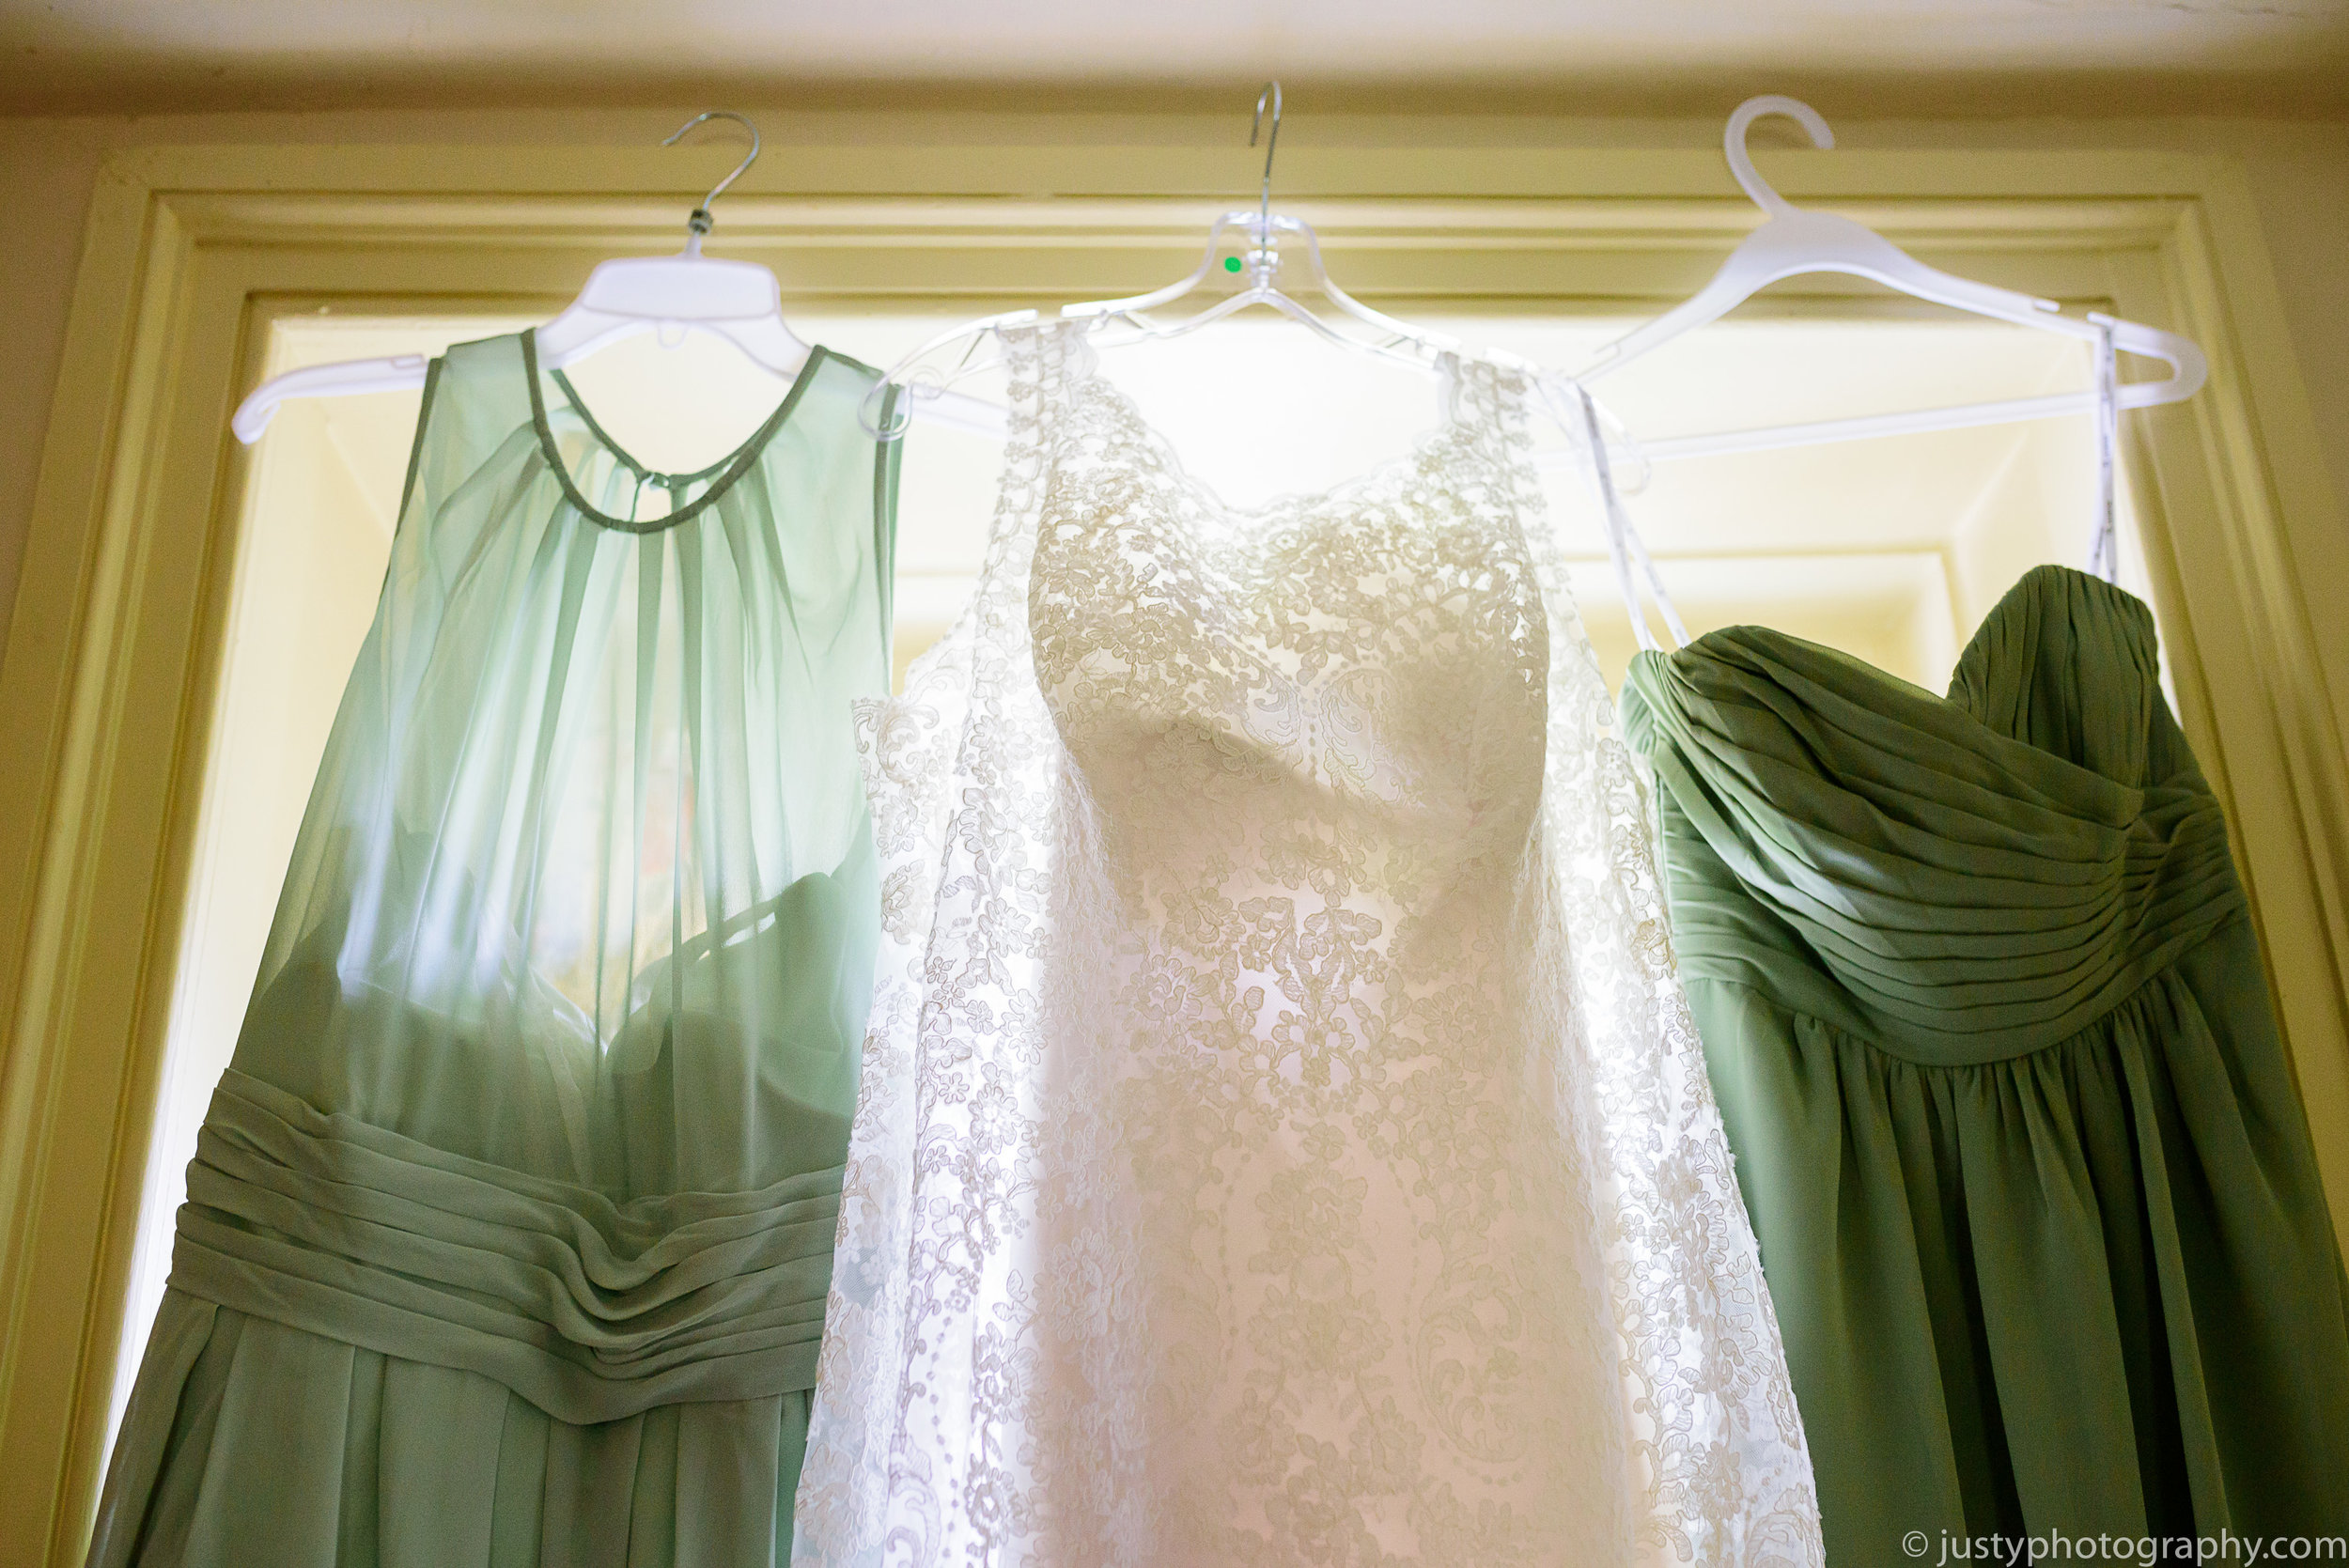 Silverbrook Farm Wedding Photos - Washington DC Wedding Photographer - Bridesmaids dresses hanging